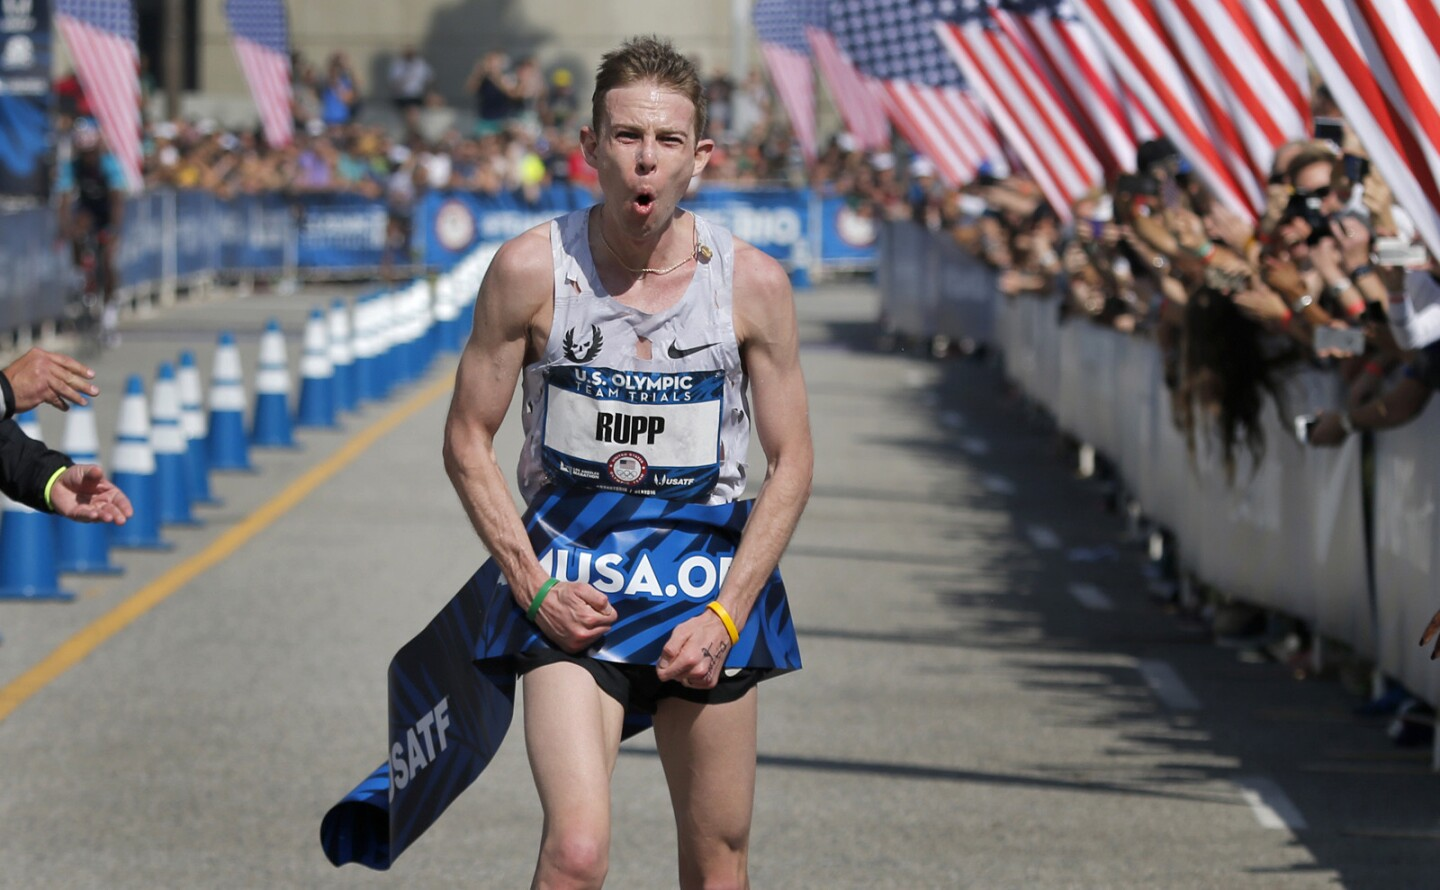 Galen Rupp of Portland, Ore., celebrates his victory after crossing the finish line in the U.S. Olympic men's marathon trial on Saturday in downtown Los Angeles.